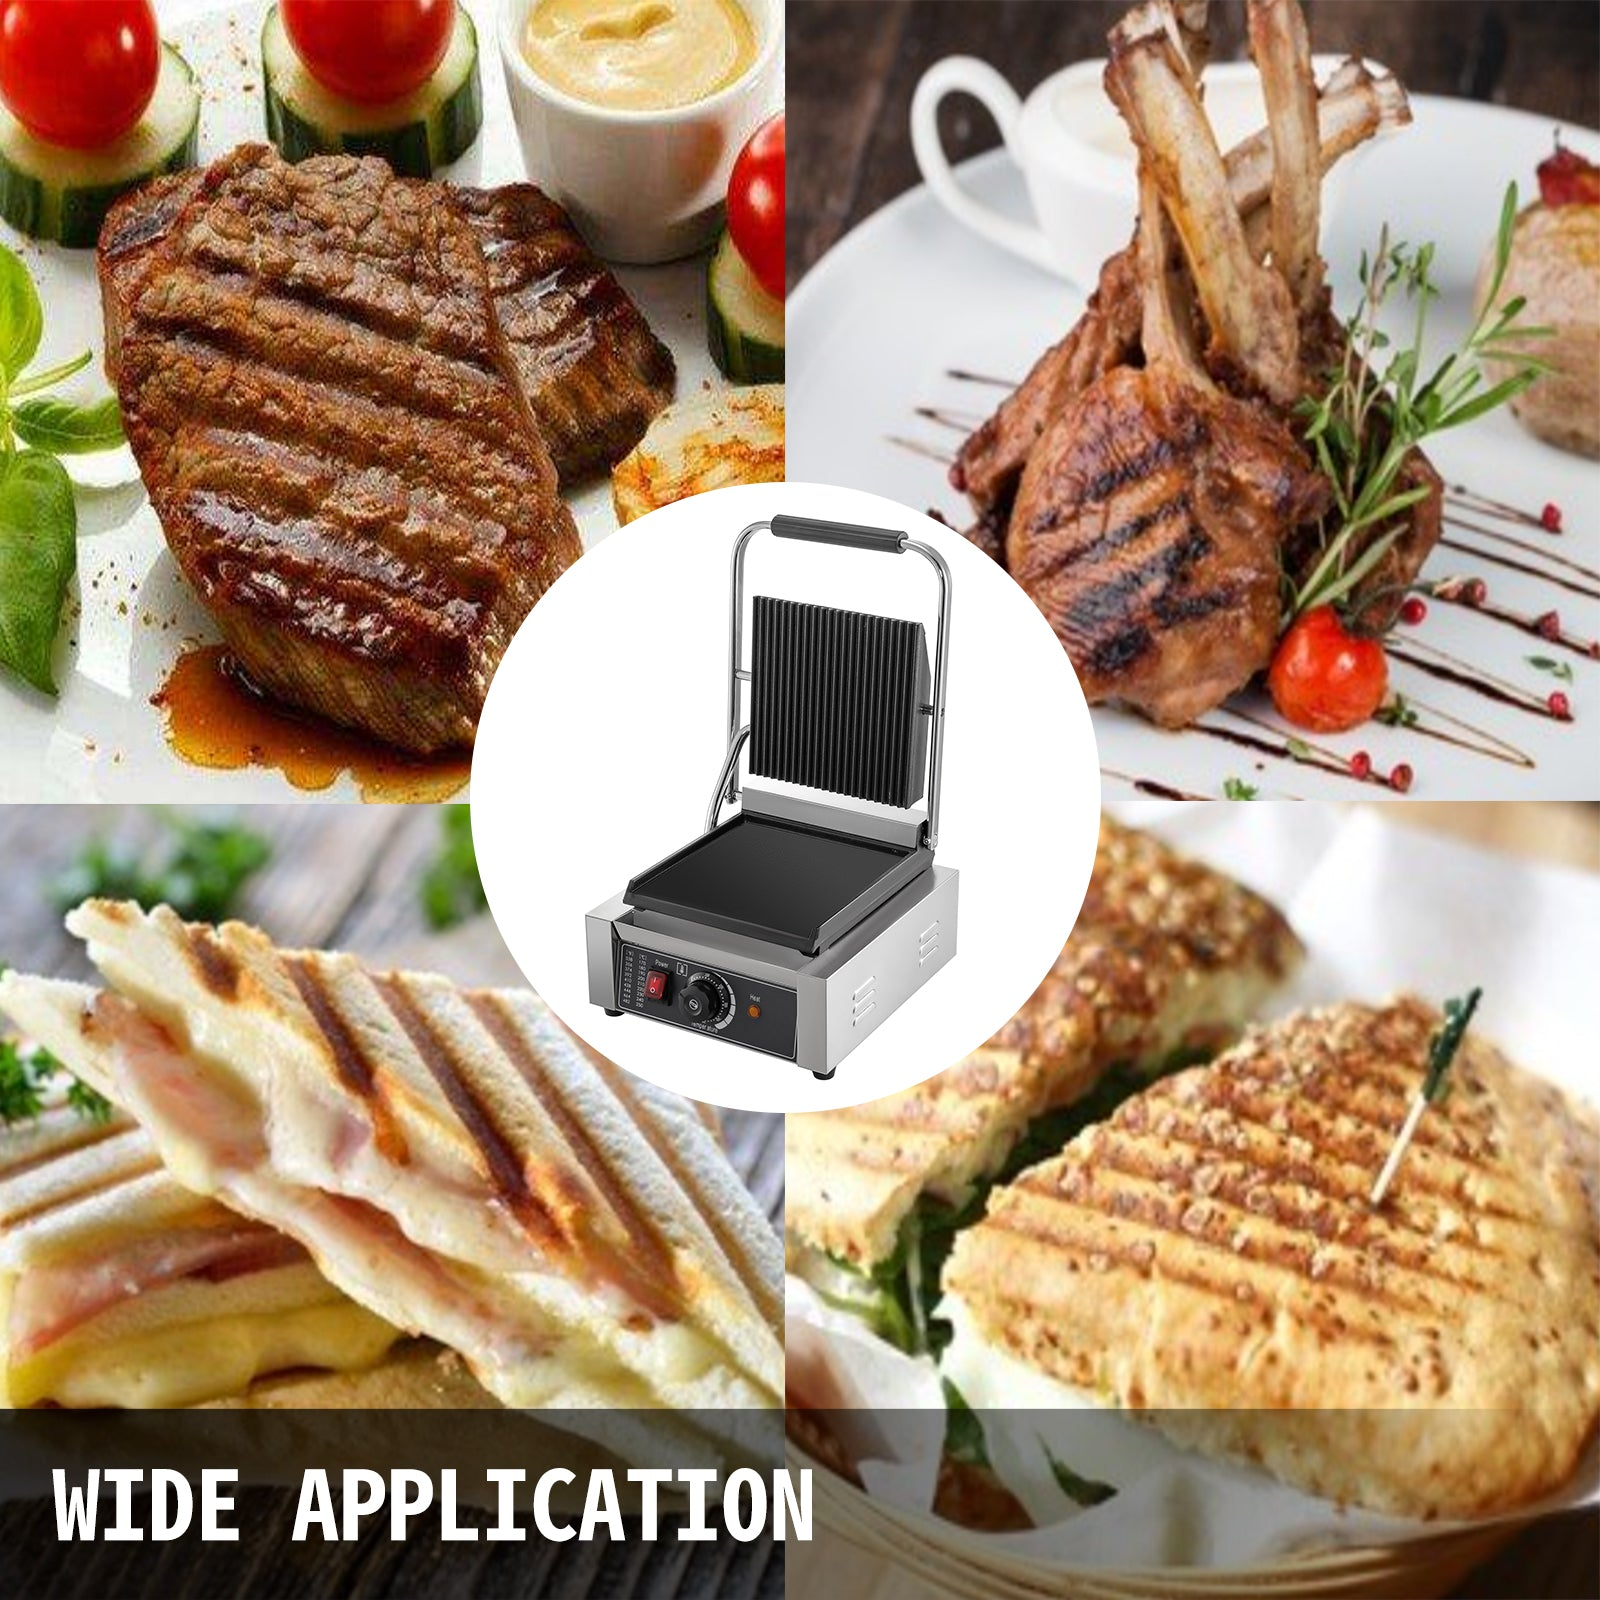 Commercial Sandwich Press Grill Griddle Panini Maker Grooved Flat Nonstick 1800w